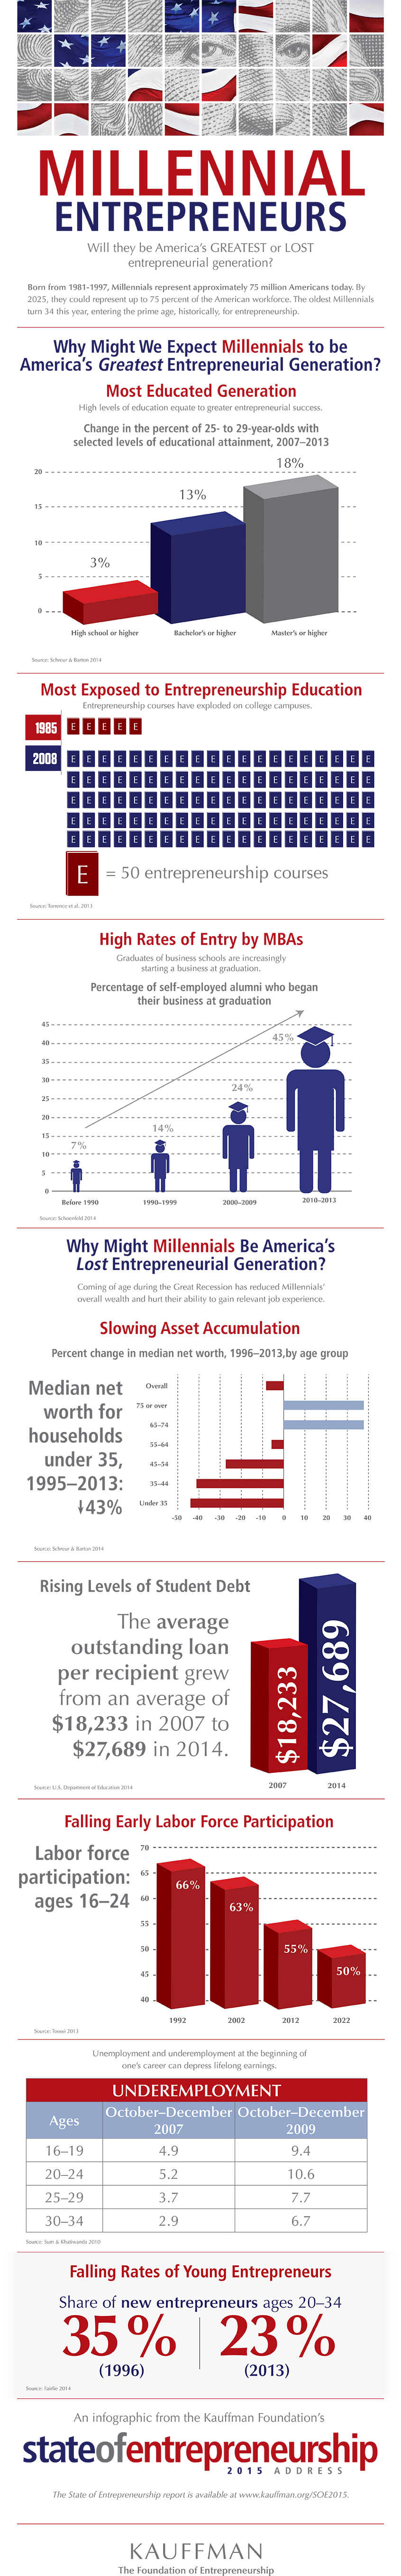 From http://www.kauffman.org/multimedia/infographics/2015/infographic-millennial-entrepreneurs-and-the-state-of-entrepreneurship